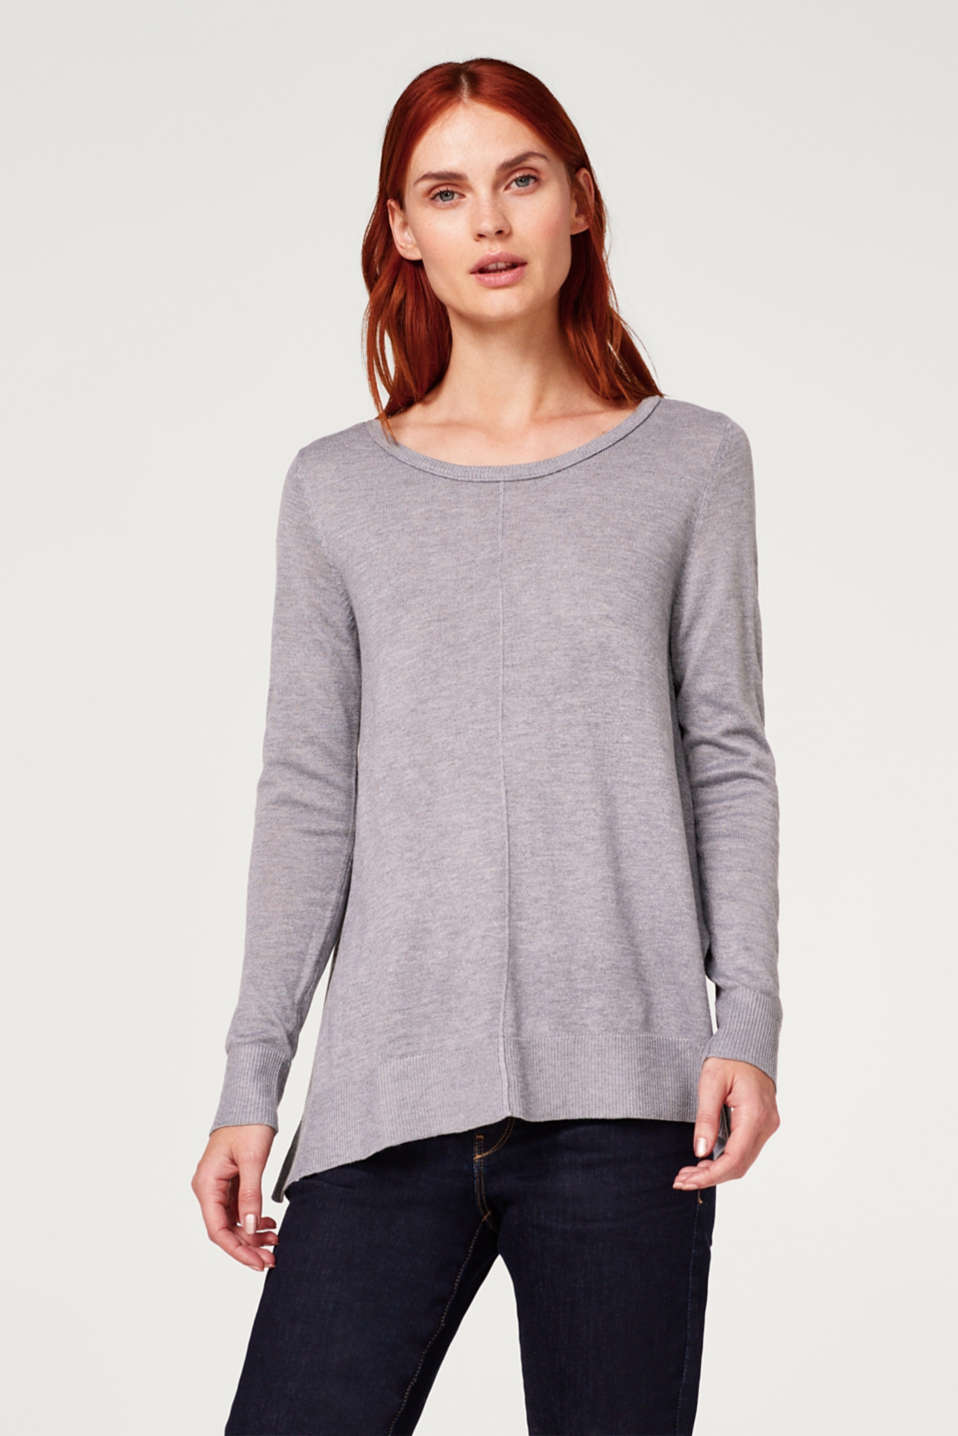 Esprit - Oversize-Sweater in A-Linie